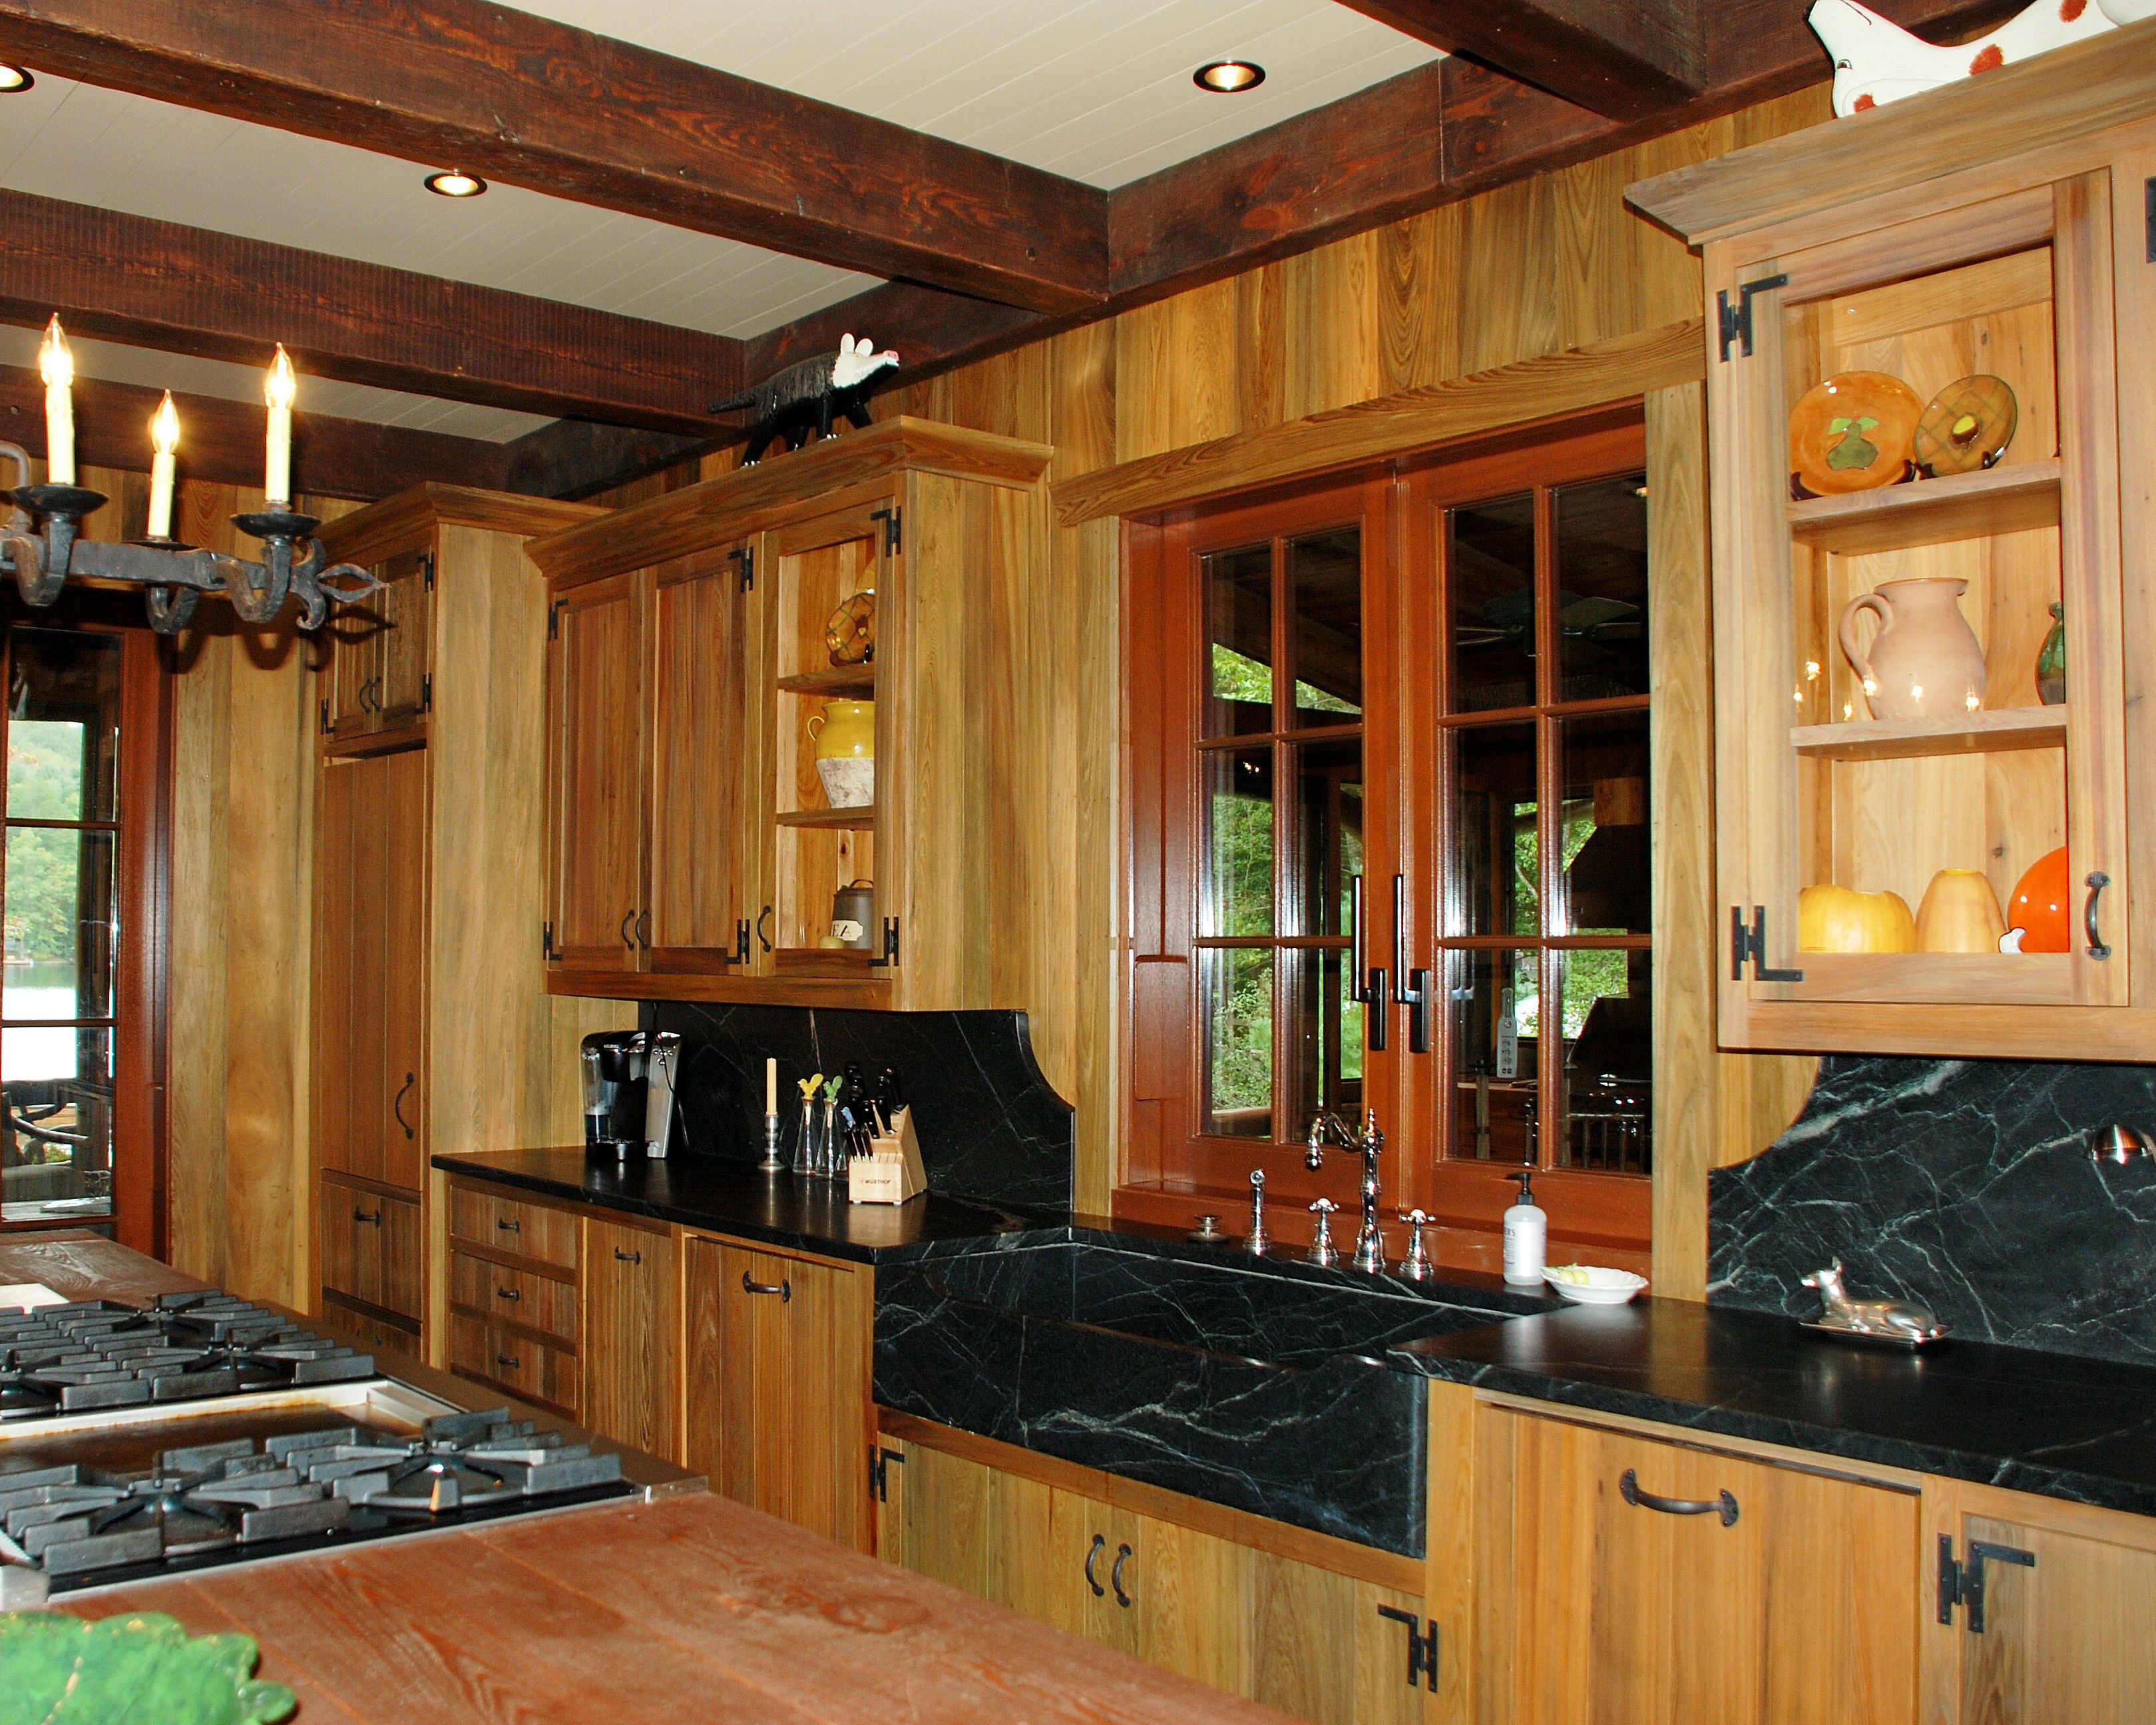 River Recovered Cypress Upper Lower Cabinets Including Cypress Wall Panels In Green Blue Brown Shades With Heart P Vintage House Low Cabinet Kitchen Cabinets